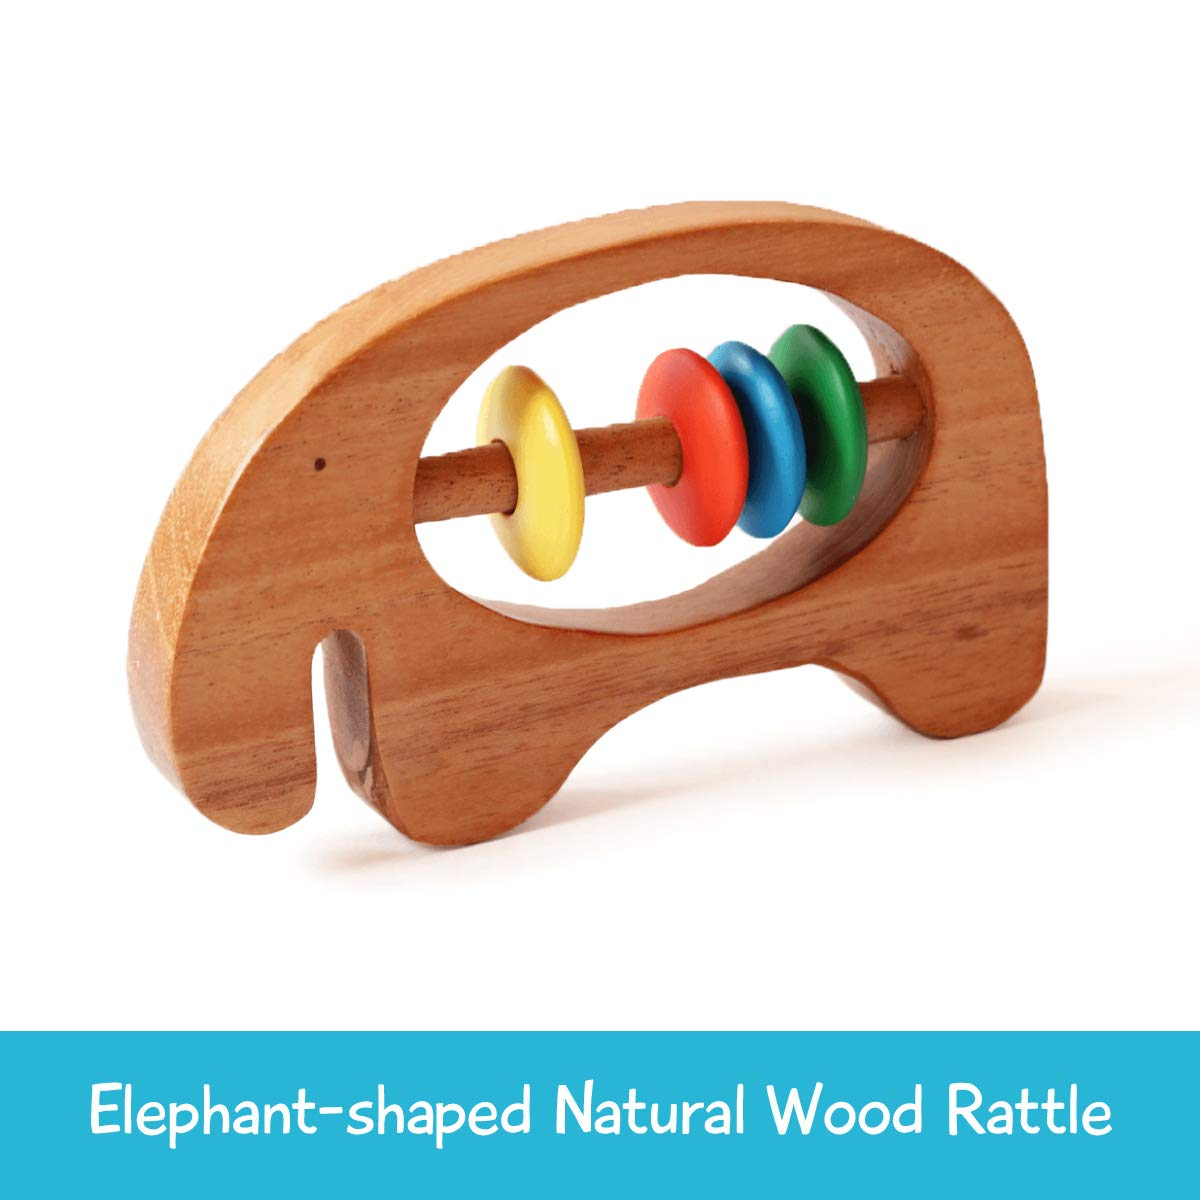 Shumee Wooden Elephant Rattle and Teething Toy for Infants, Babies(6 Months+) - Organic, Natural, Grasping, Clutching Montessori Shake Toy - Polished with Beeswax (Wooden Elephant Rattle)